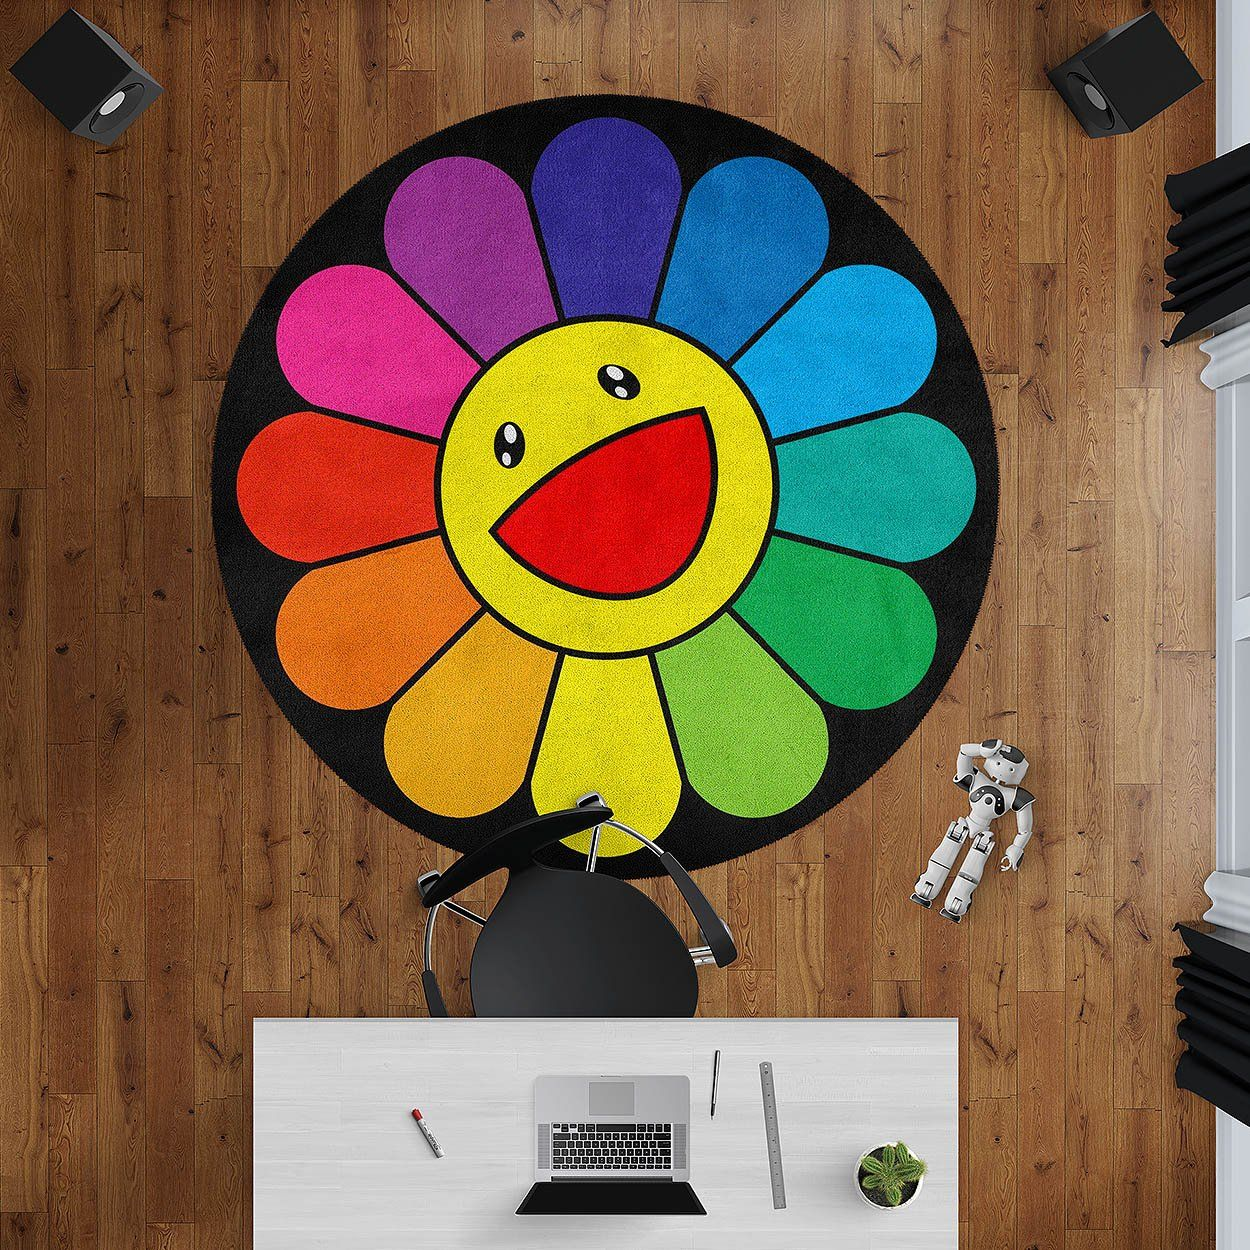 Happy Flower Round Rug Modern Contemporary Rugs Hypebeast Room Accessories In 2020 Colorful Area Rug Hypebeast Room Modern Art Living Room #sunflower #rug #for #living #room